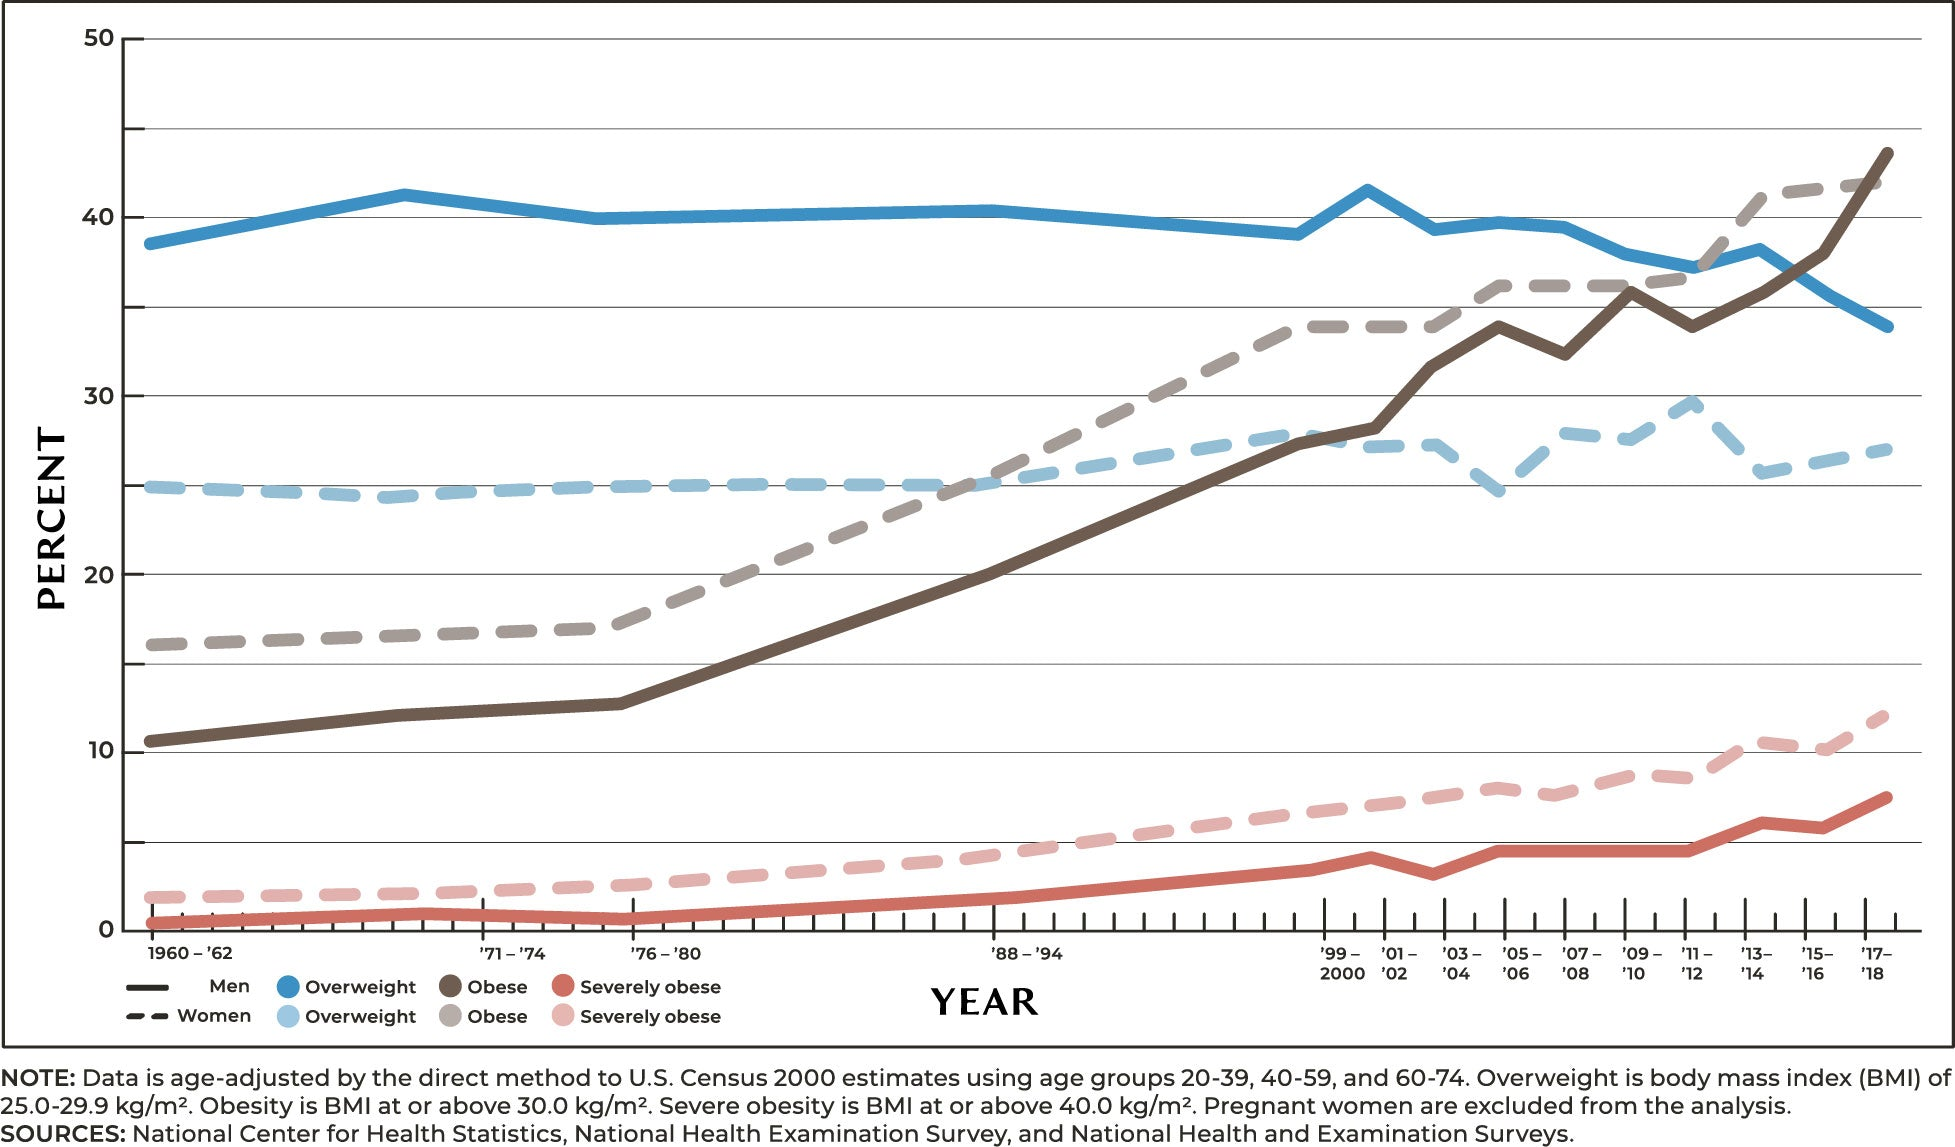 From the late 70's to 2018, percentage of obese adults in the US showing a rise in over 40% for both men and women